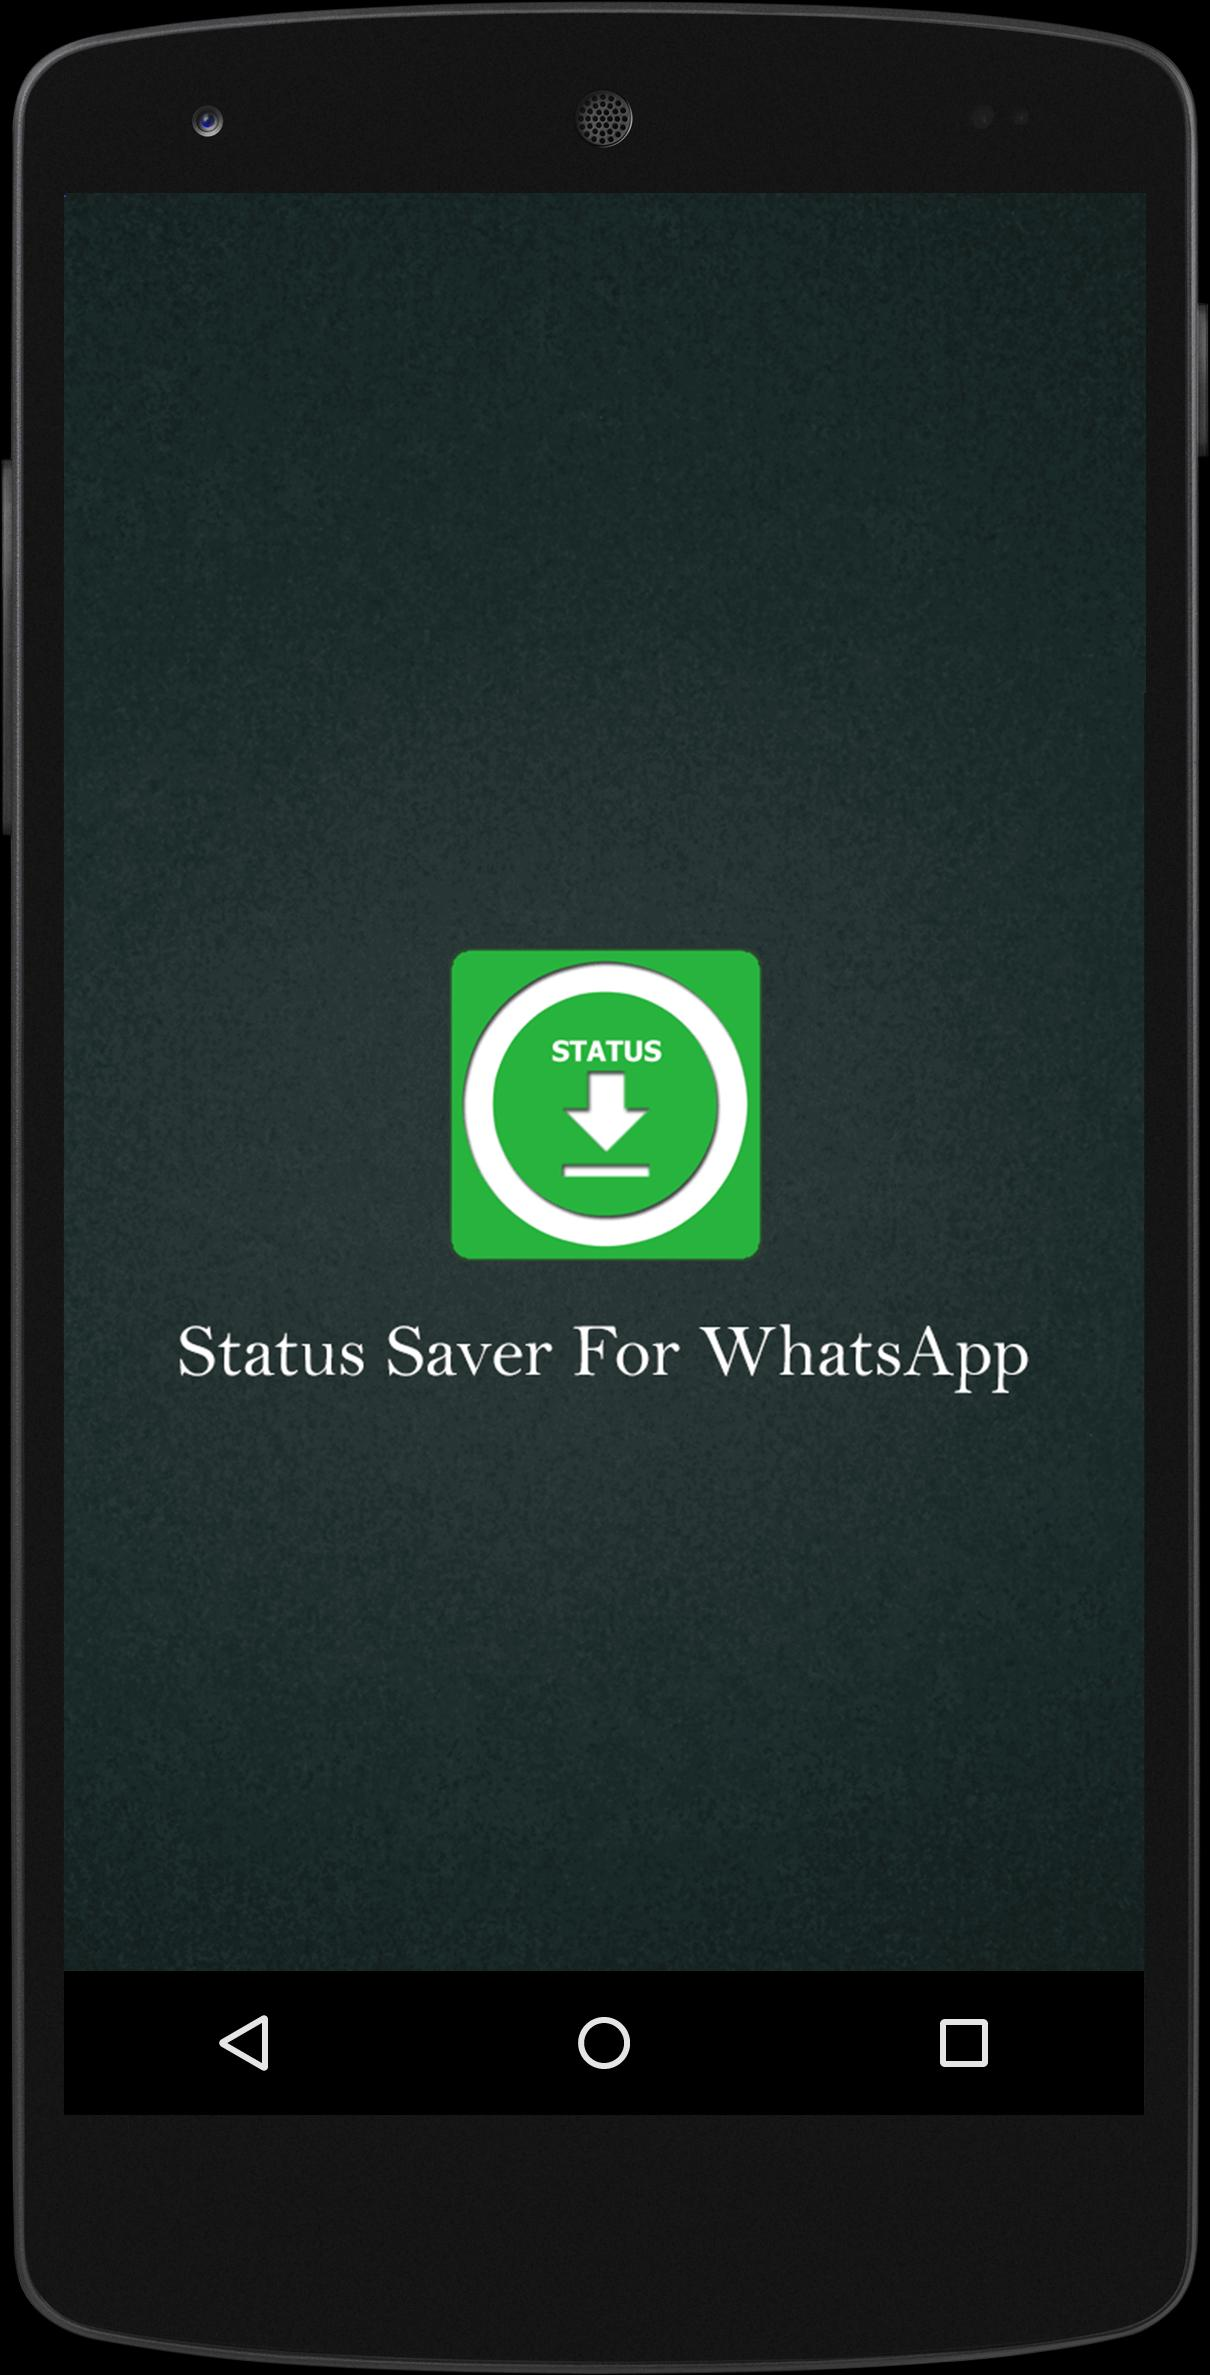 Status Saver For WhatsApp for Android - APK Download